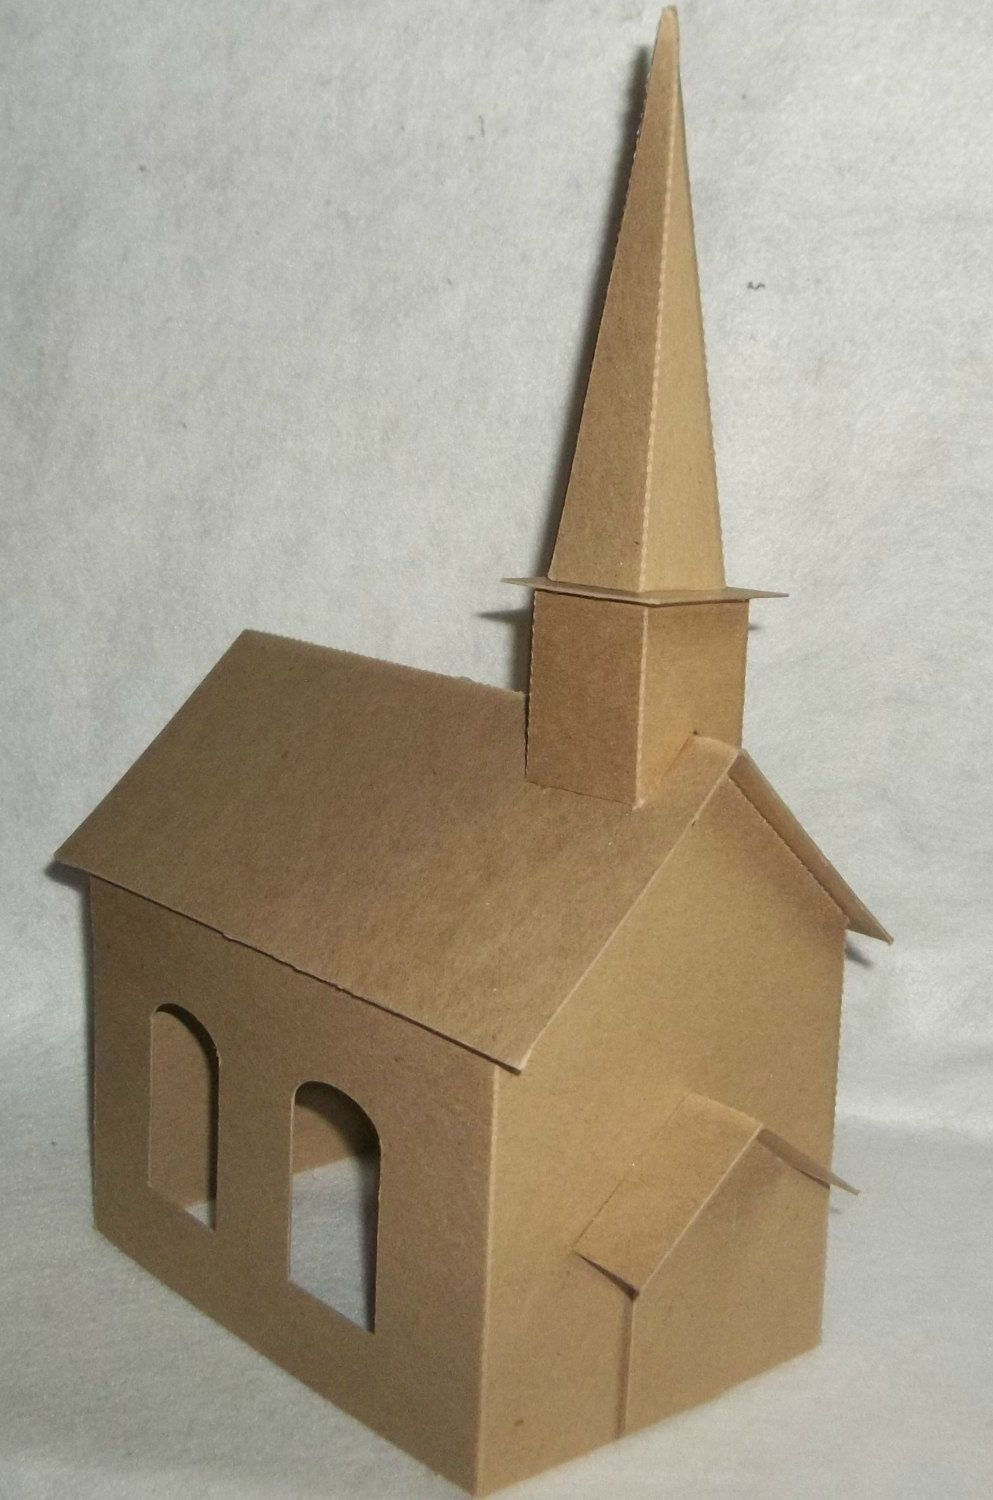 Decorate Your Own Little Village House For Christmas Halloween Easter Valentines Day Or Whatever The Occa Cardboard Crafts Cardboard House Christmas Crafts